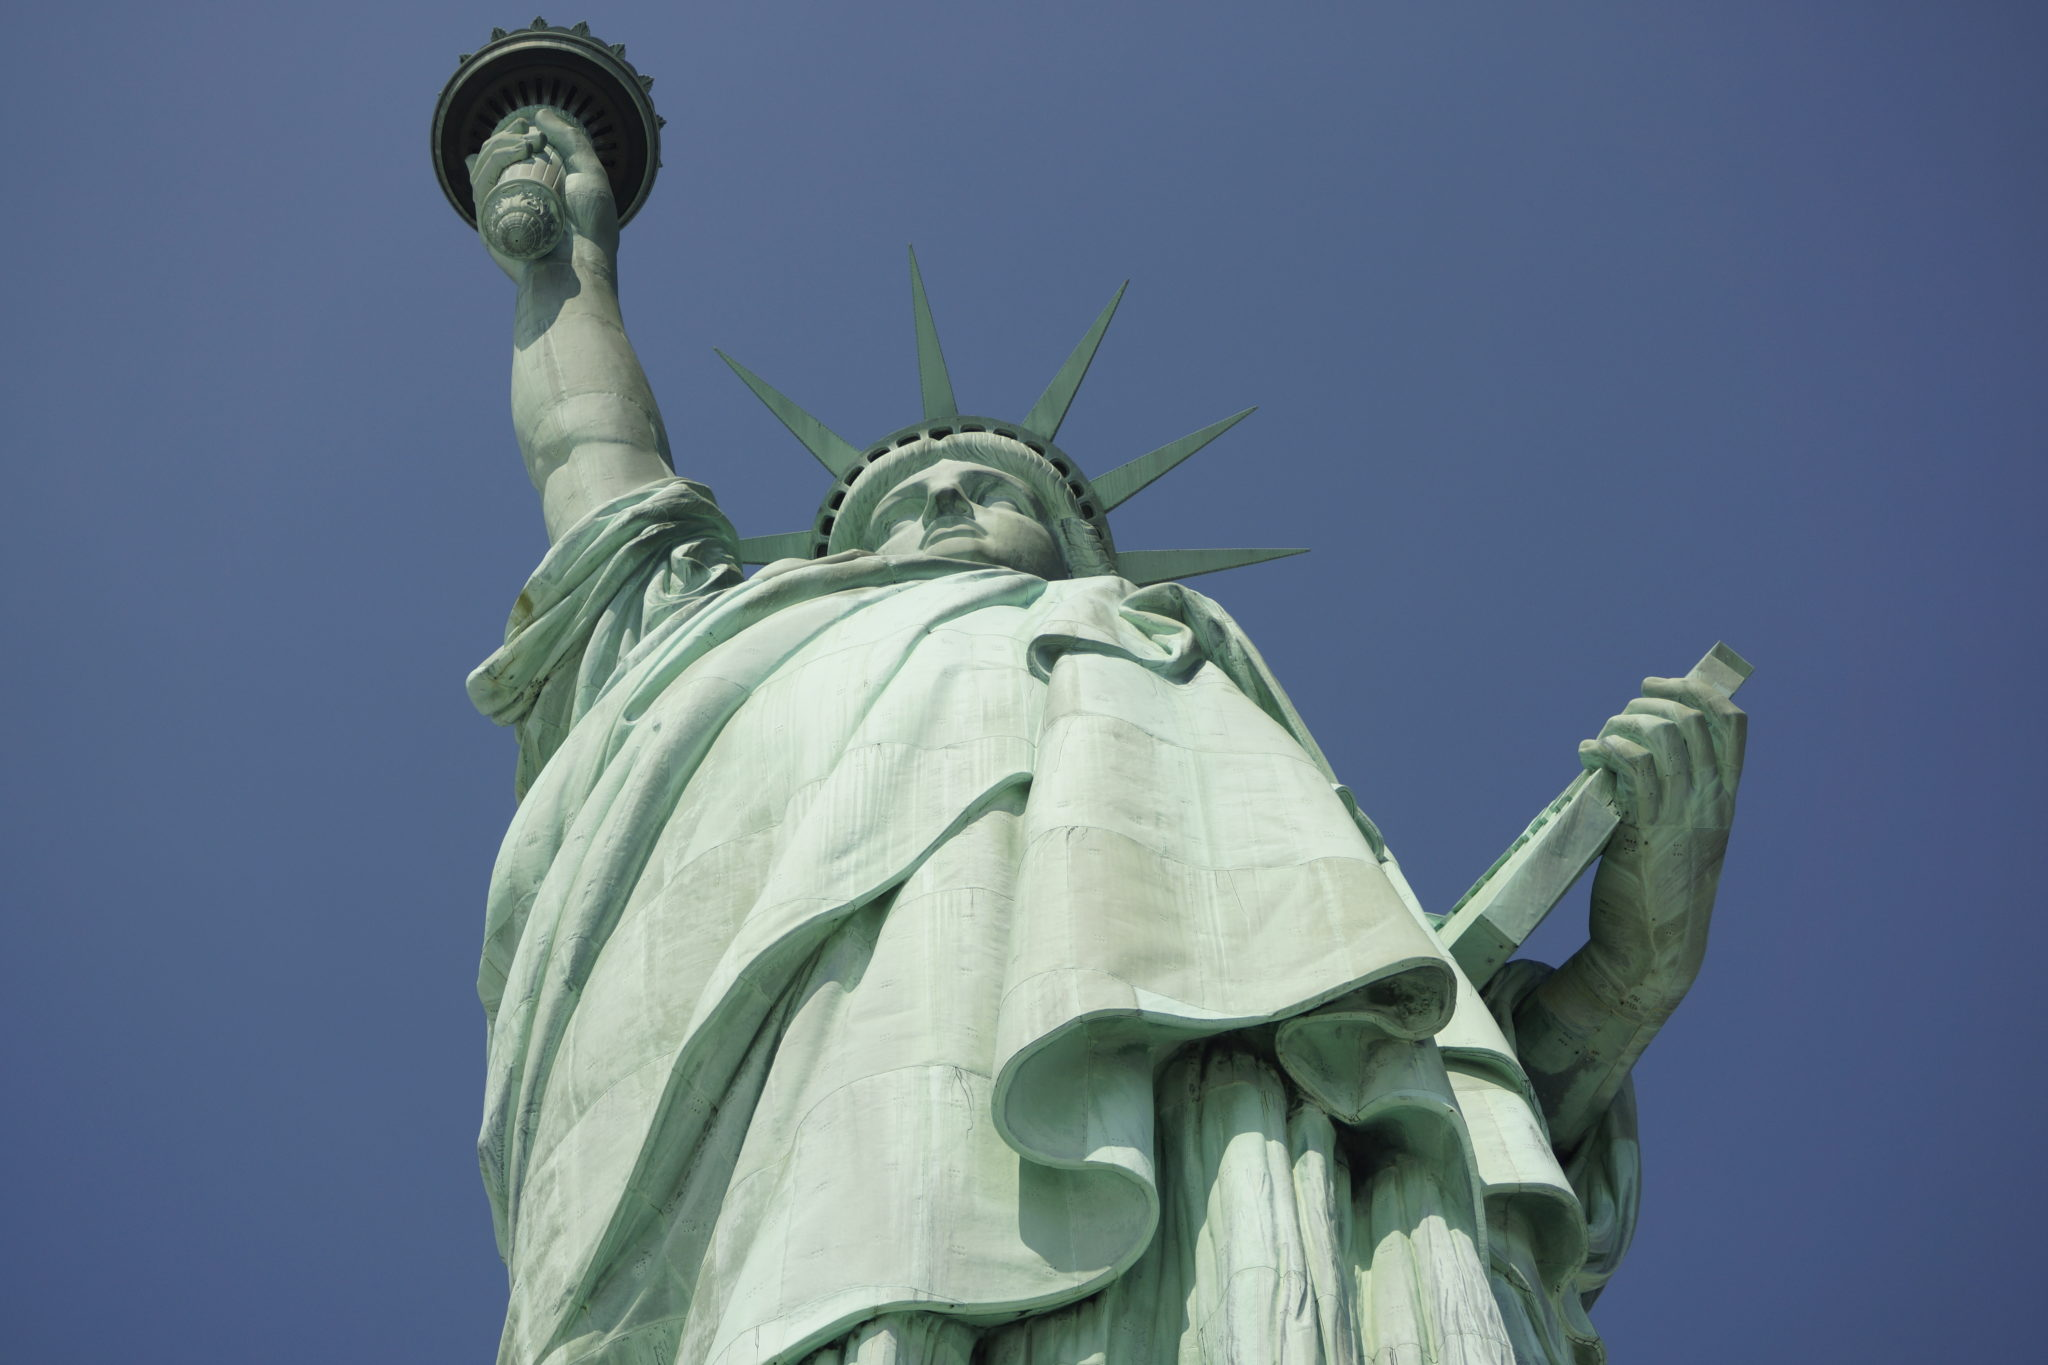 - 7 Tips for a Stress Free Visit to the Statue of Liberty - NYC Tourism - Tourist - Lady Liberty - Liberty Island - Memorial - Monument - Ellis Island - TheKillerLook.com - The Killer Look